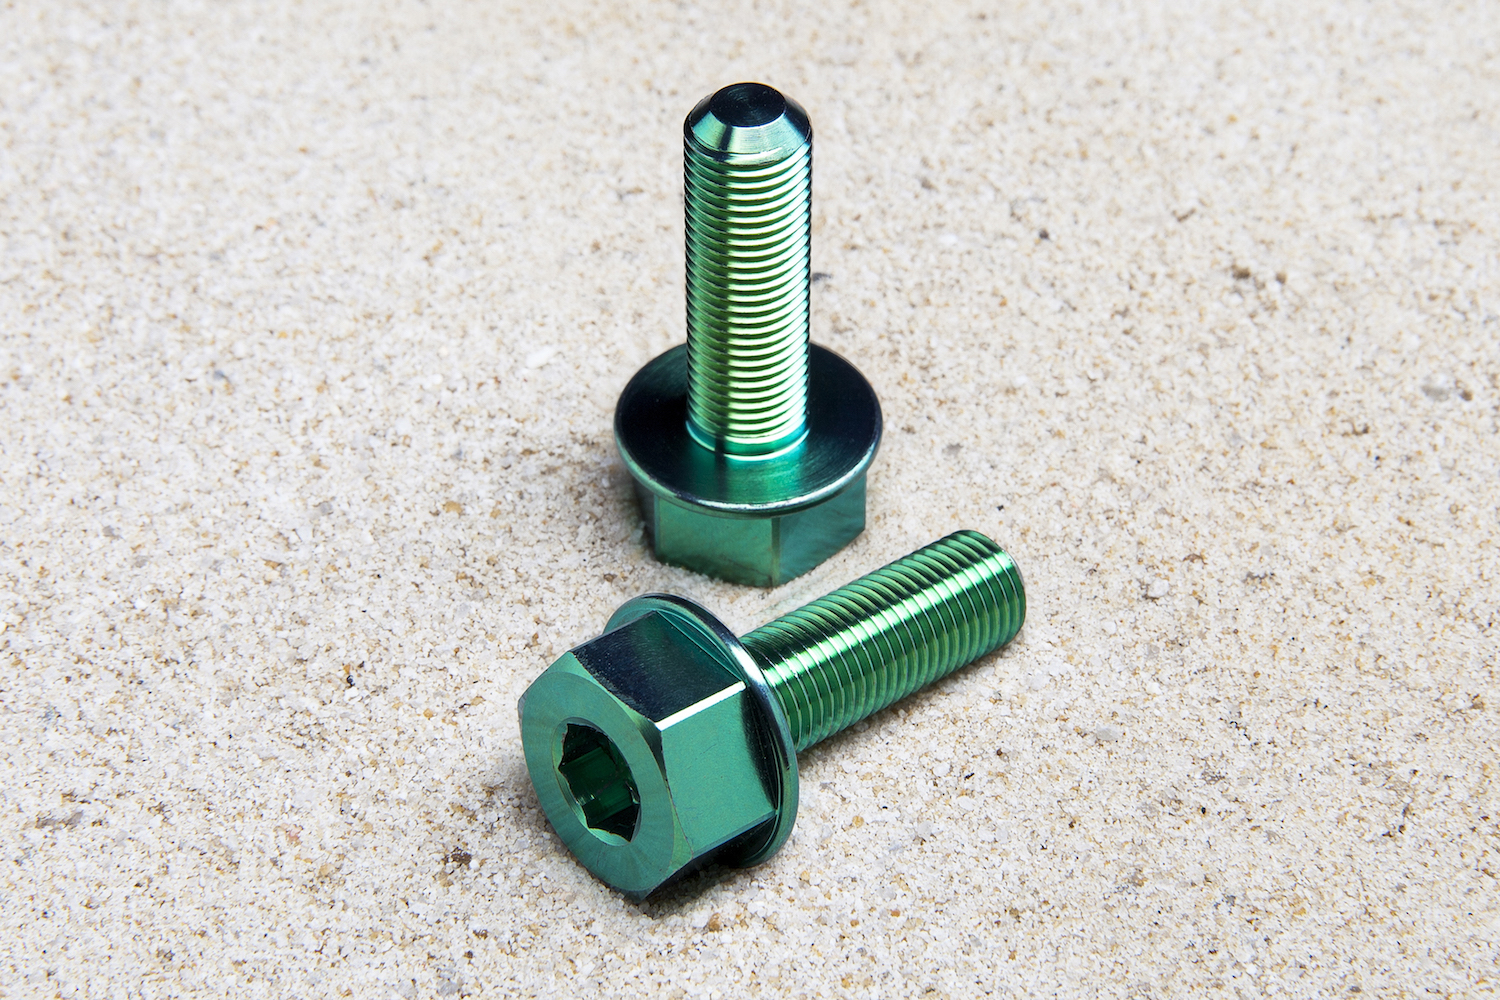 Impurity Ti Female Hub Bolts, 10mm